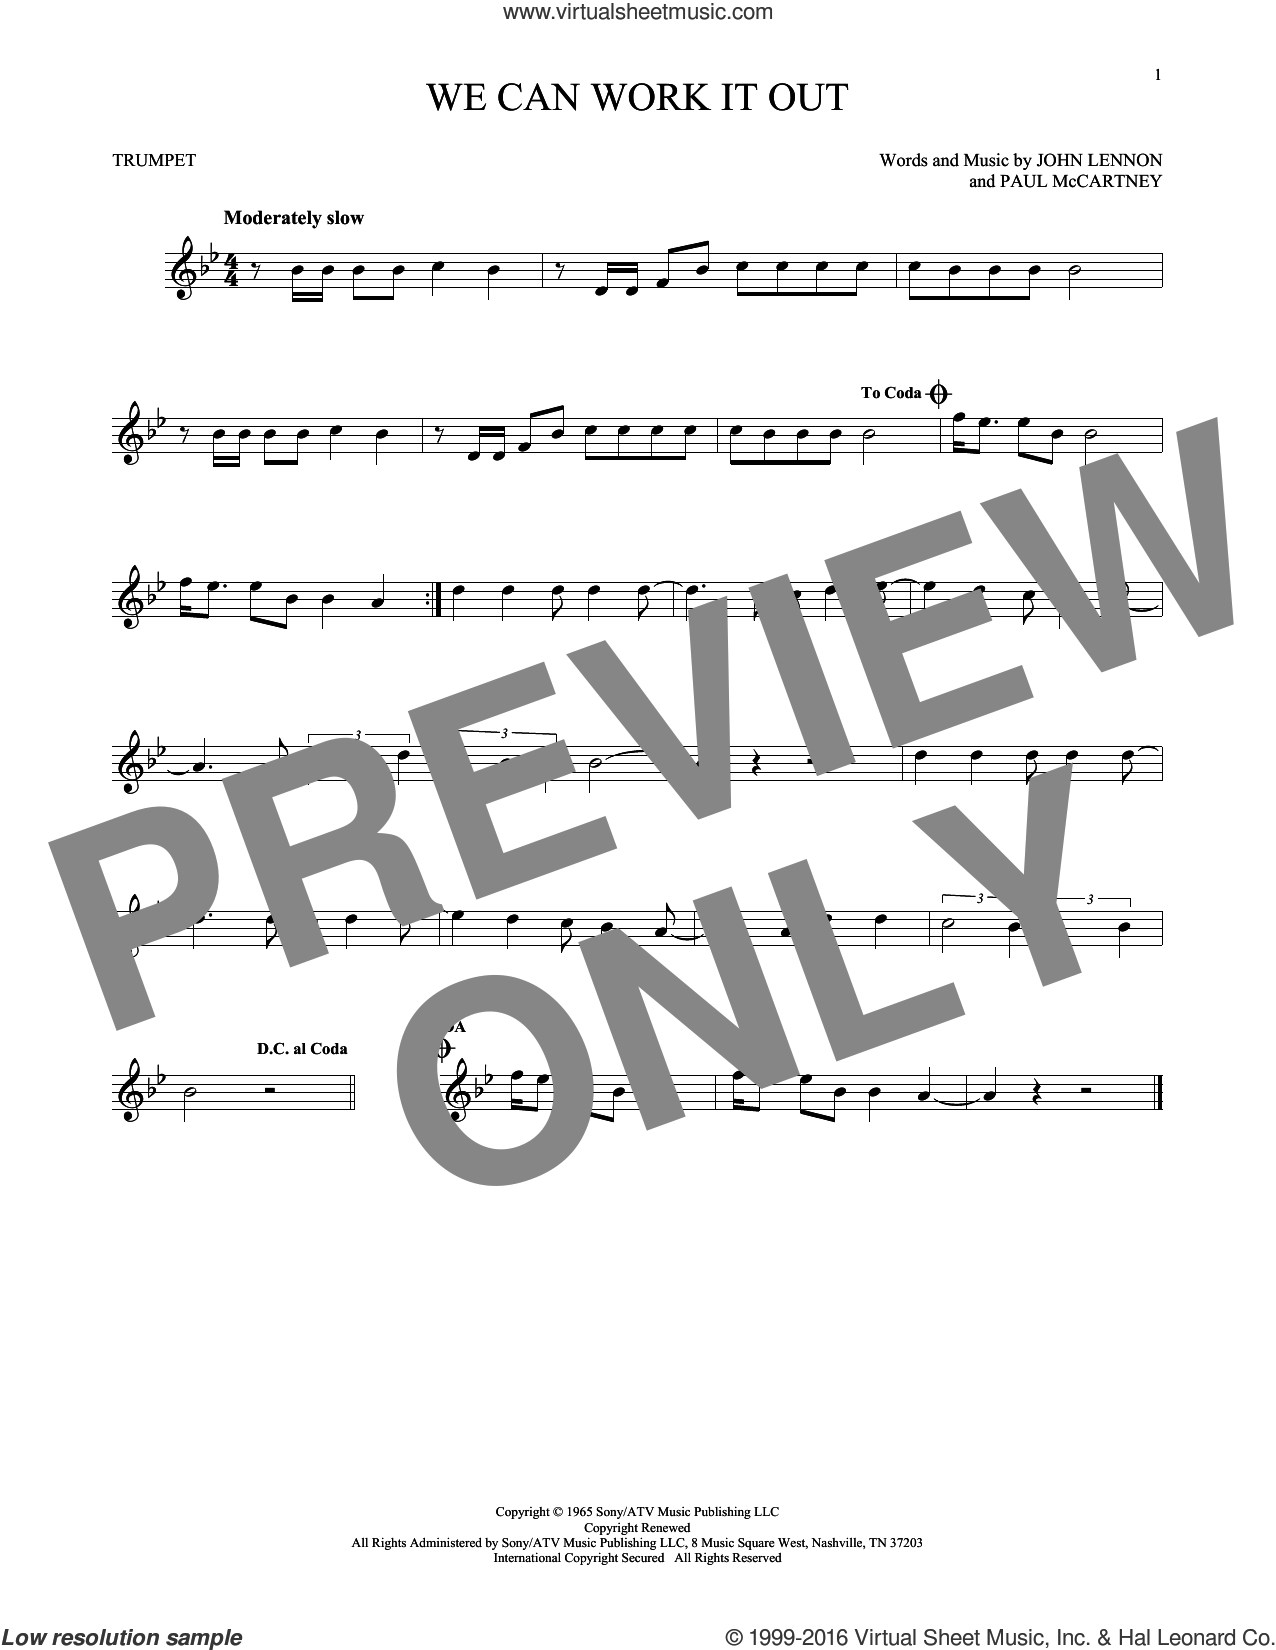 We Can Work It Out sheet music for trumpet solo by The Beatles, John Lennon and Paul McCartney. Score Image Preview.